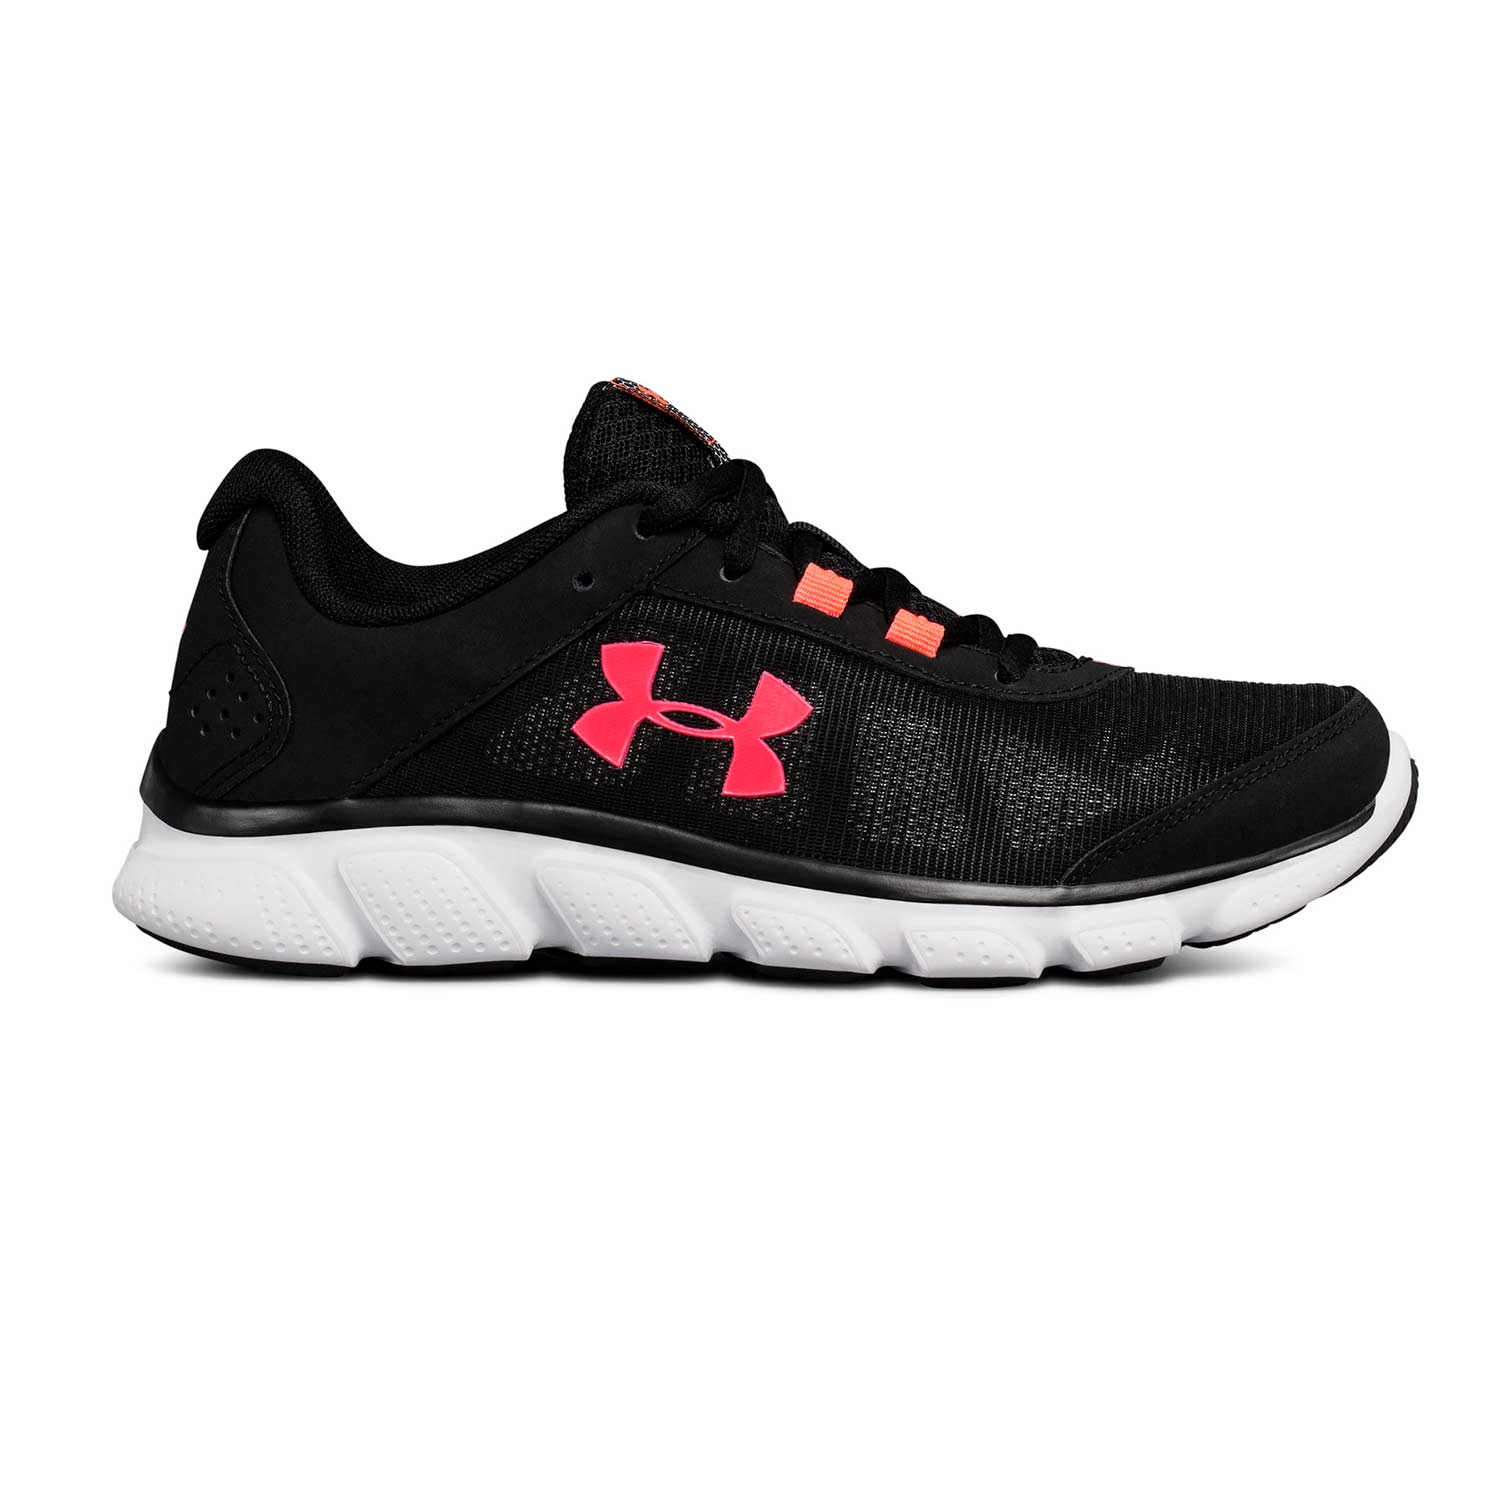 Under Armour Women's Micro G Assert 7 Running Shoes